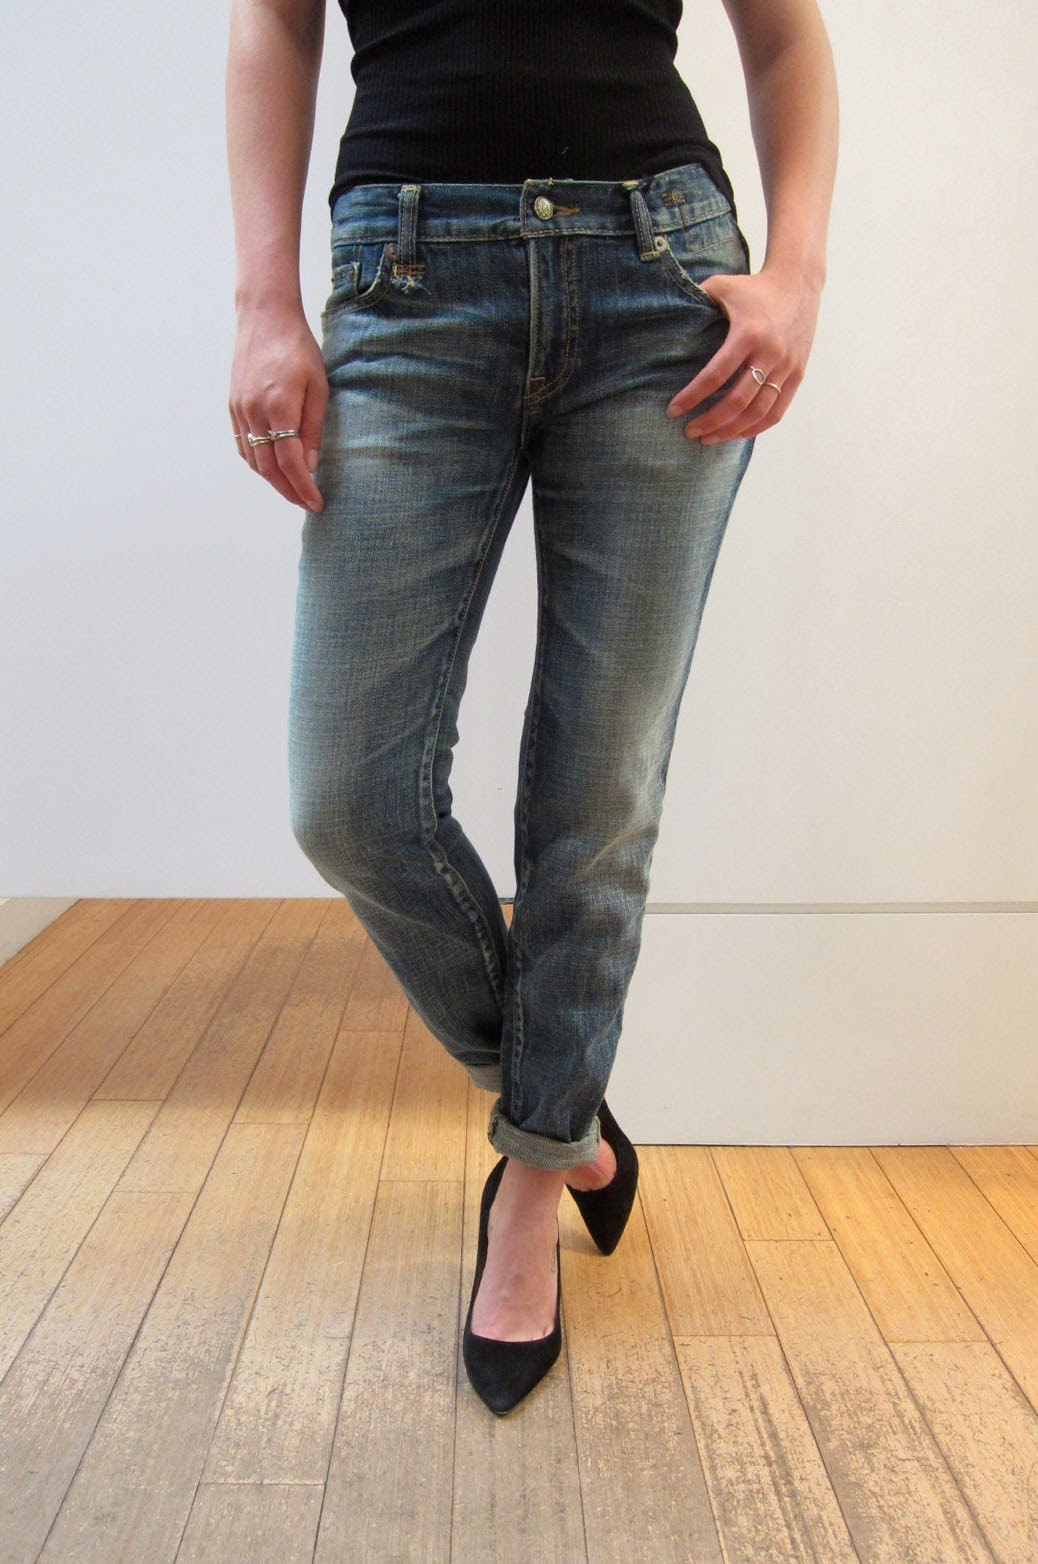 c4b8088659b2f9 They are amazing if you haven't tried them. The denim was made in Japan,  and don't have stretch in them! So quite different than the other R13  fabrics.